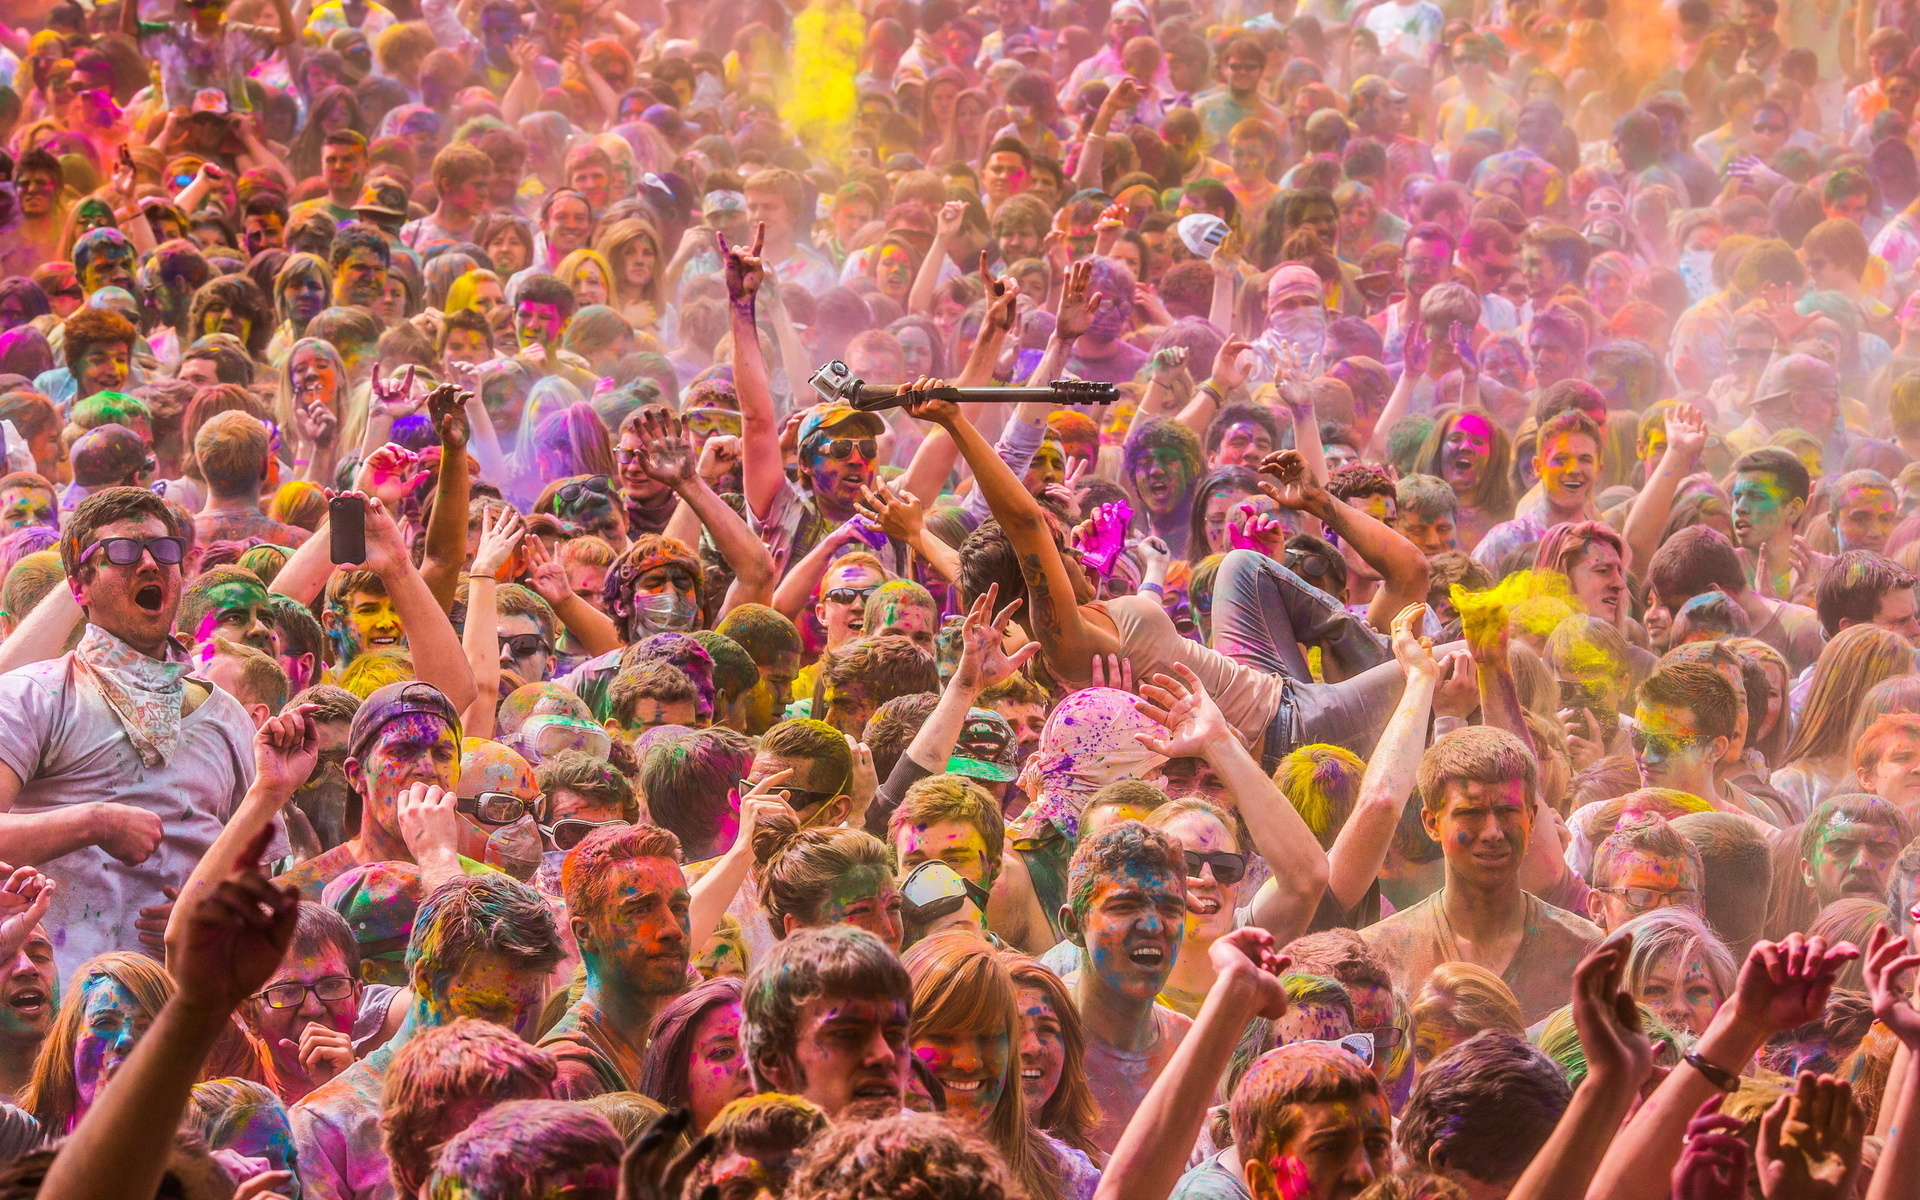 festival of colors Full HD Wallpaper and Background ...